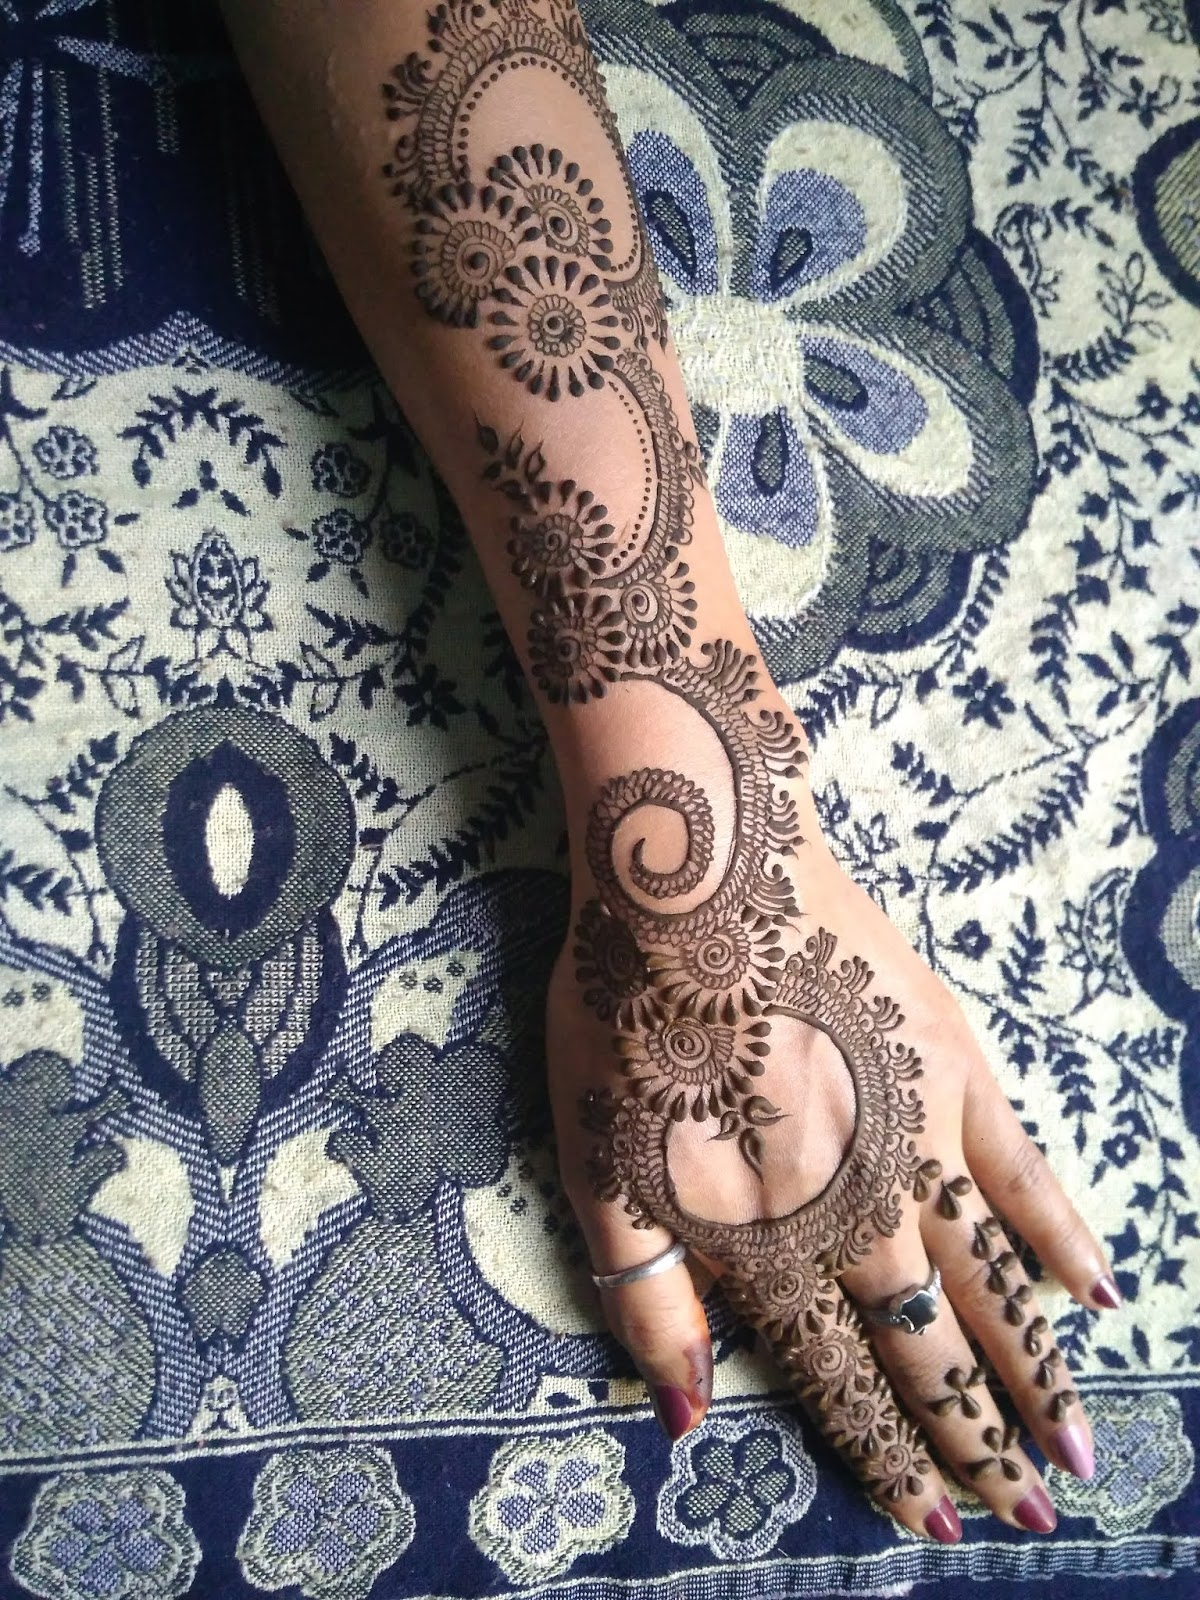 Mamta Mehndi Design Easy Arabic Mehndi Design 2018 Stylish Mehndi